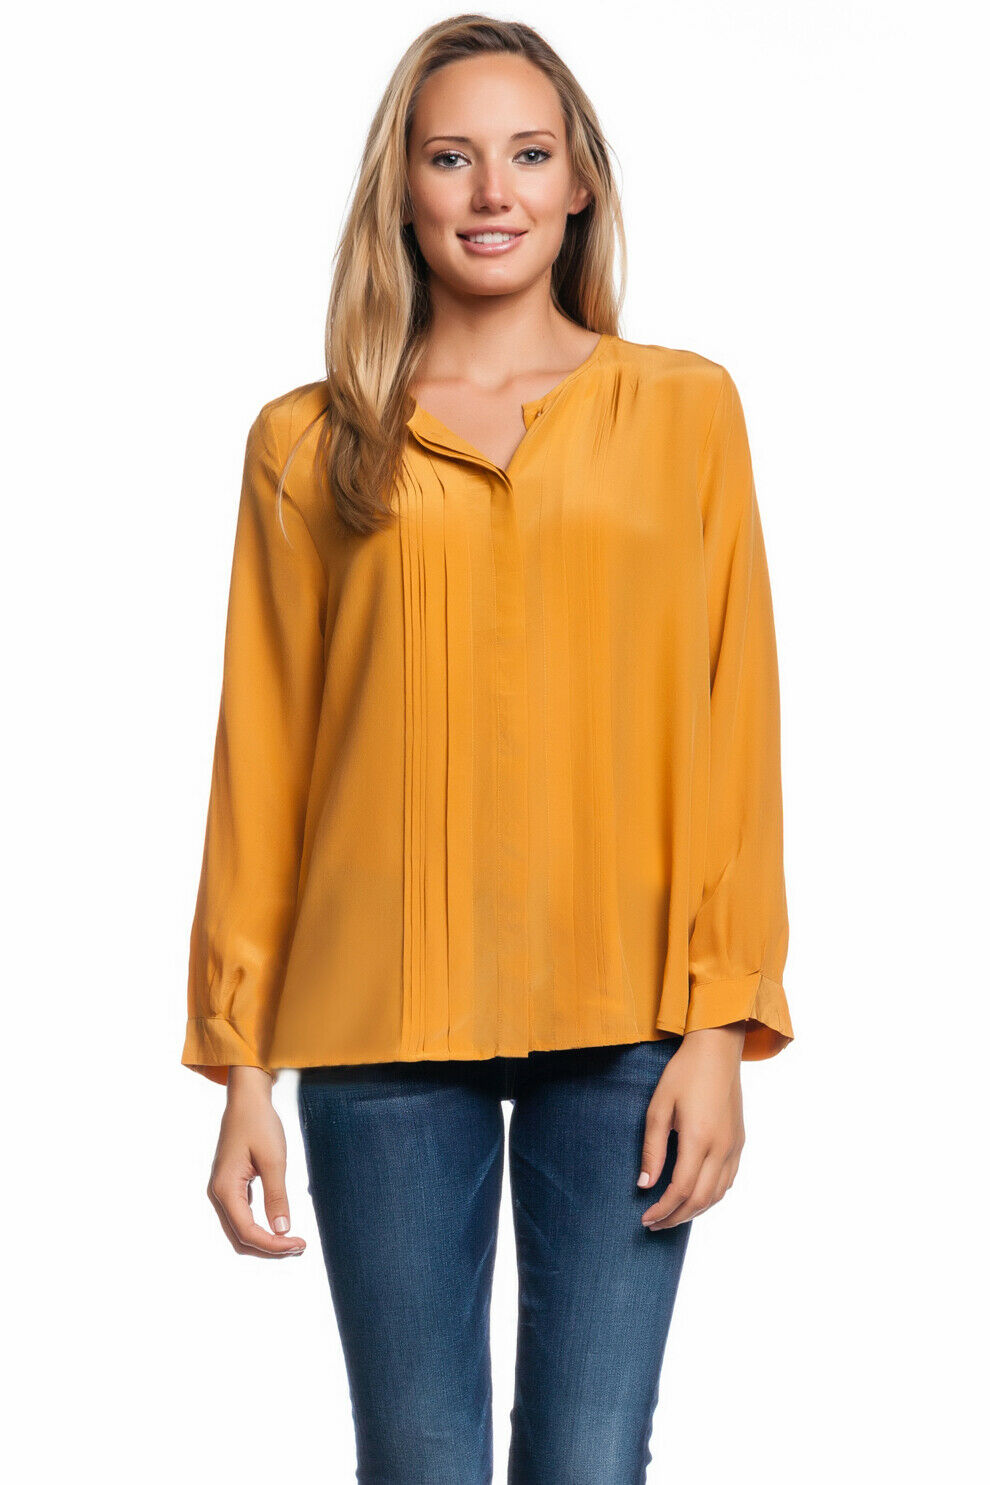 Joie Mellea Blouse golden Amber Pleats Silk Crepe Yellow Button Down Top Blouse